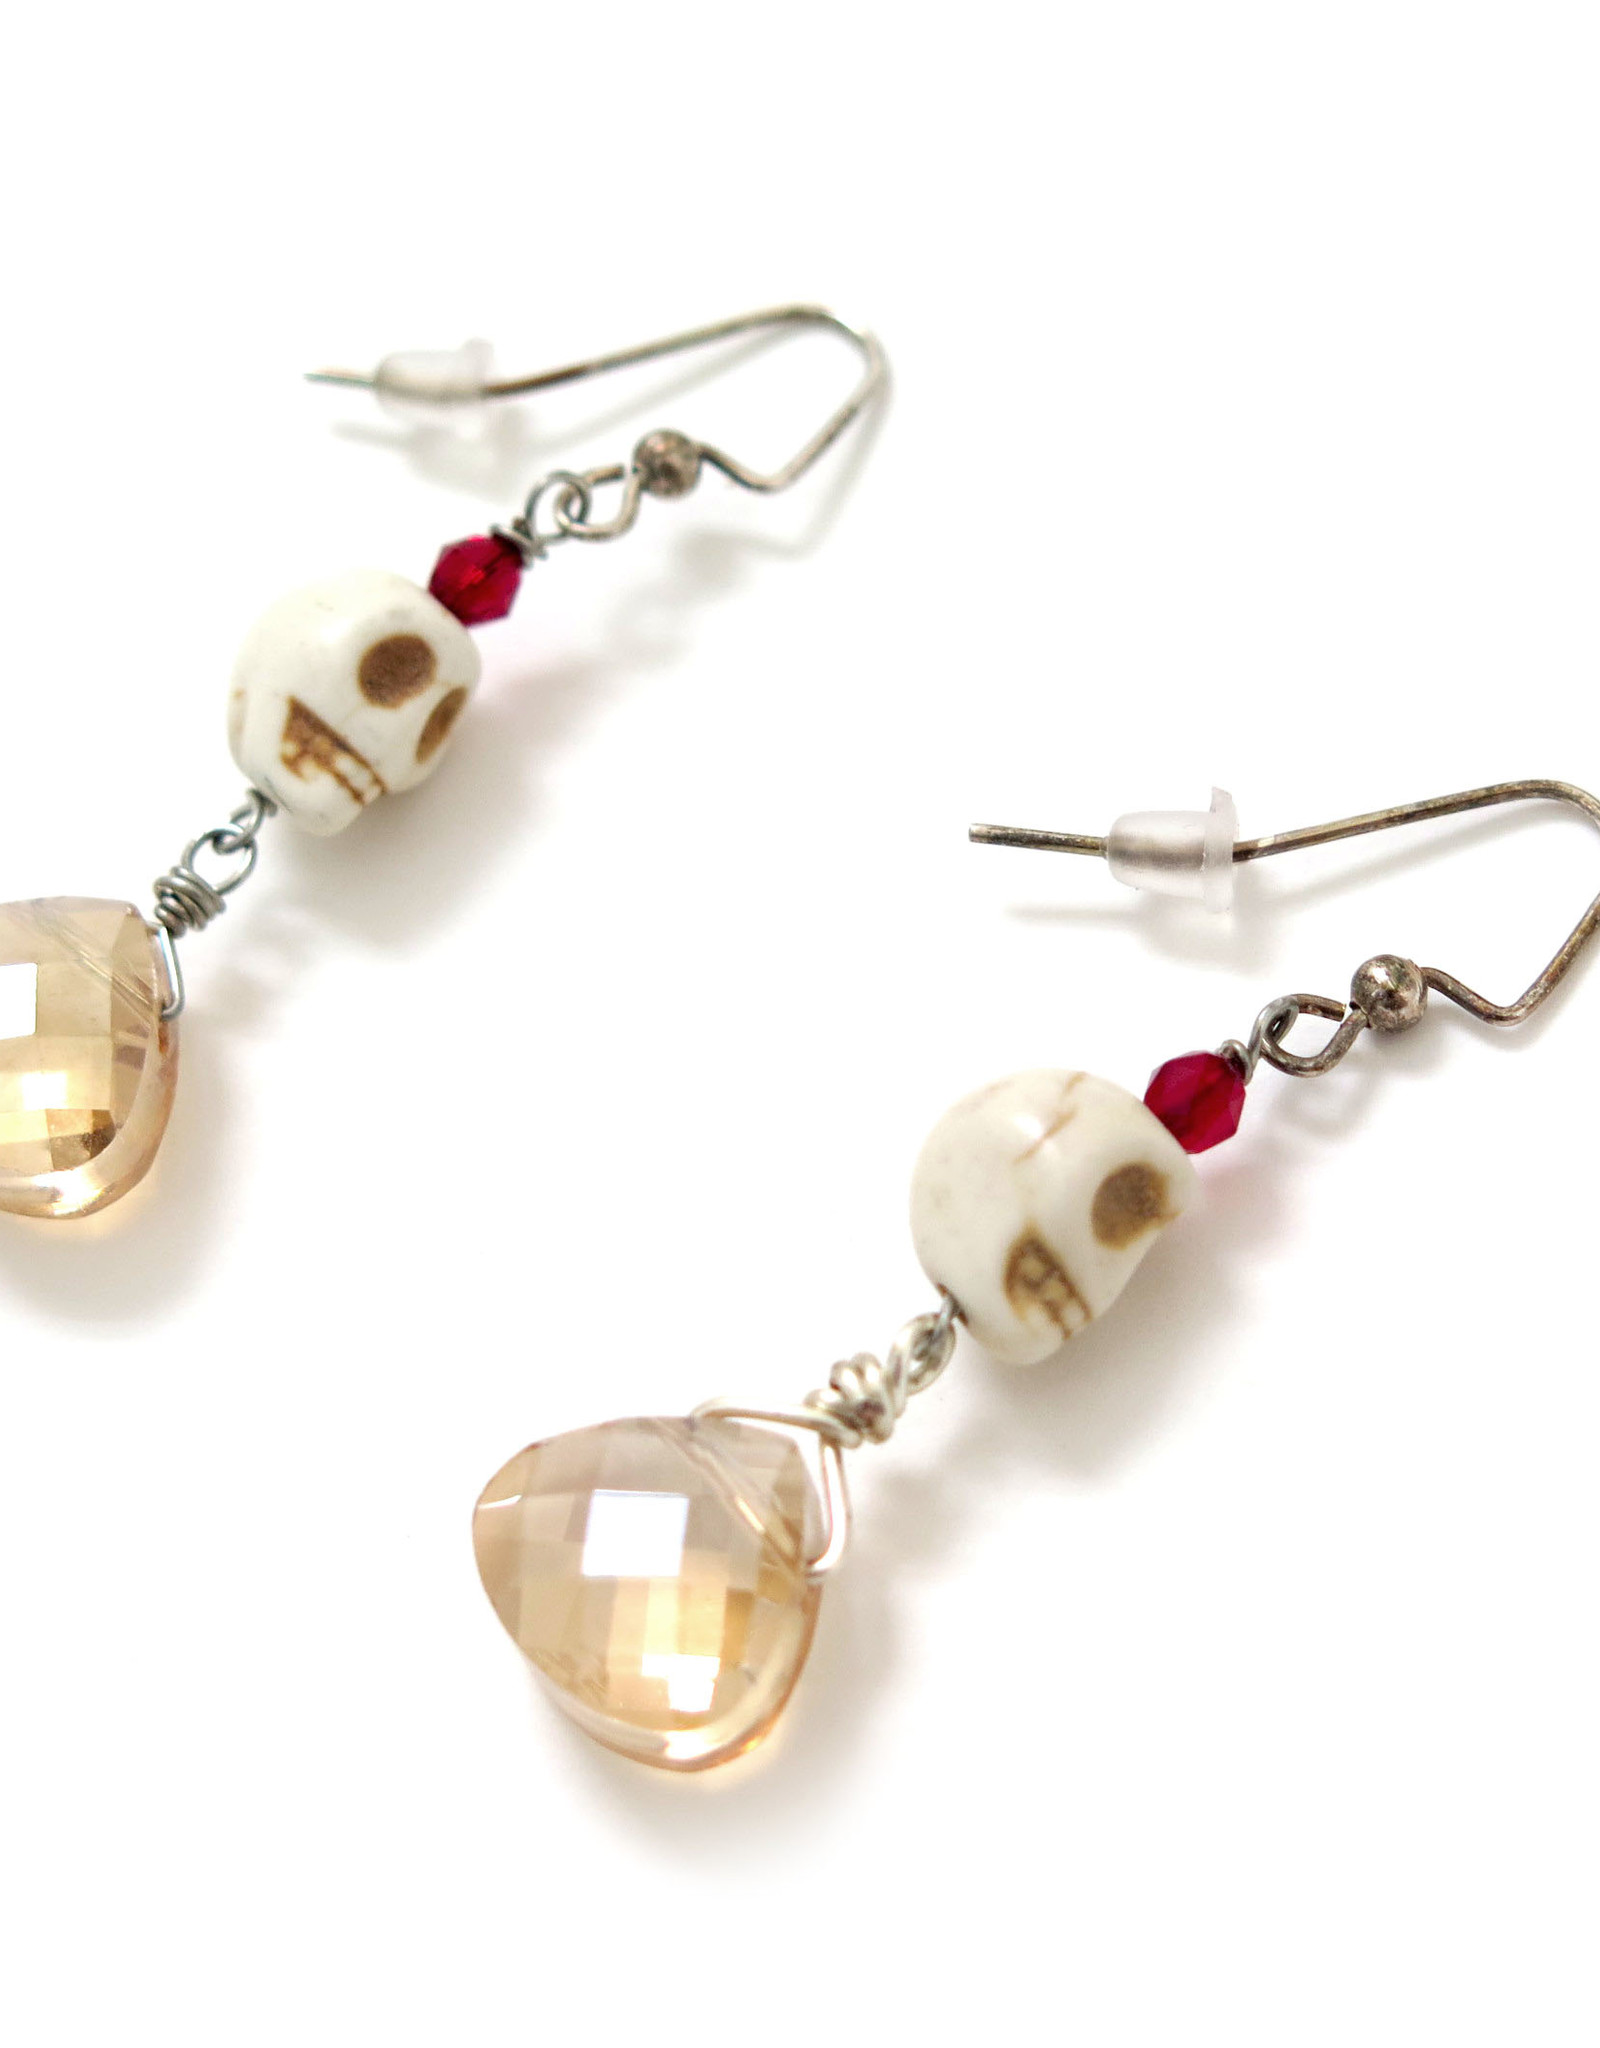 Skull Earrings with Small Champagne Jewel by Dana Diederich